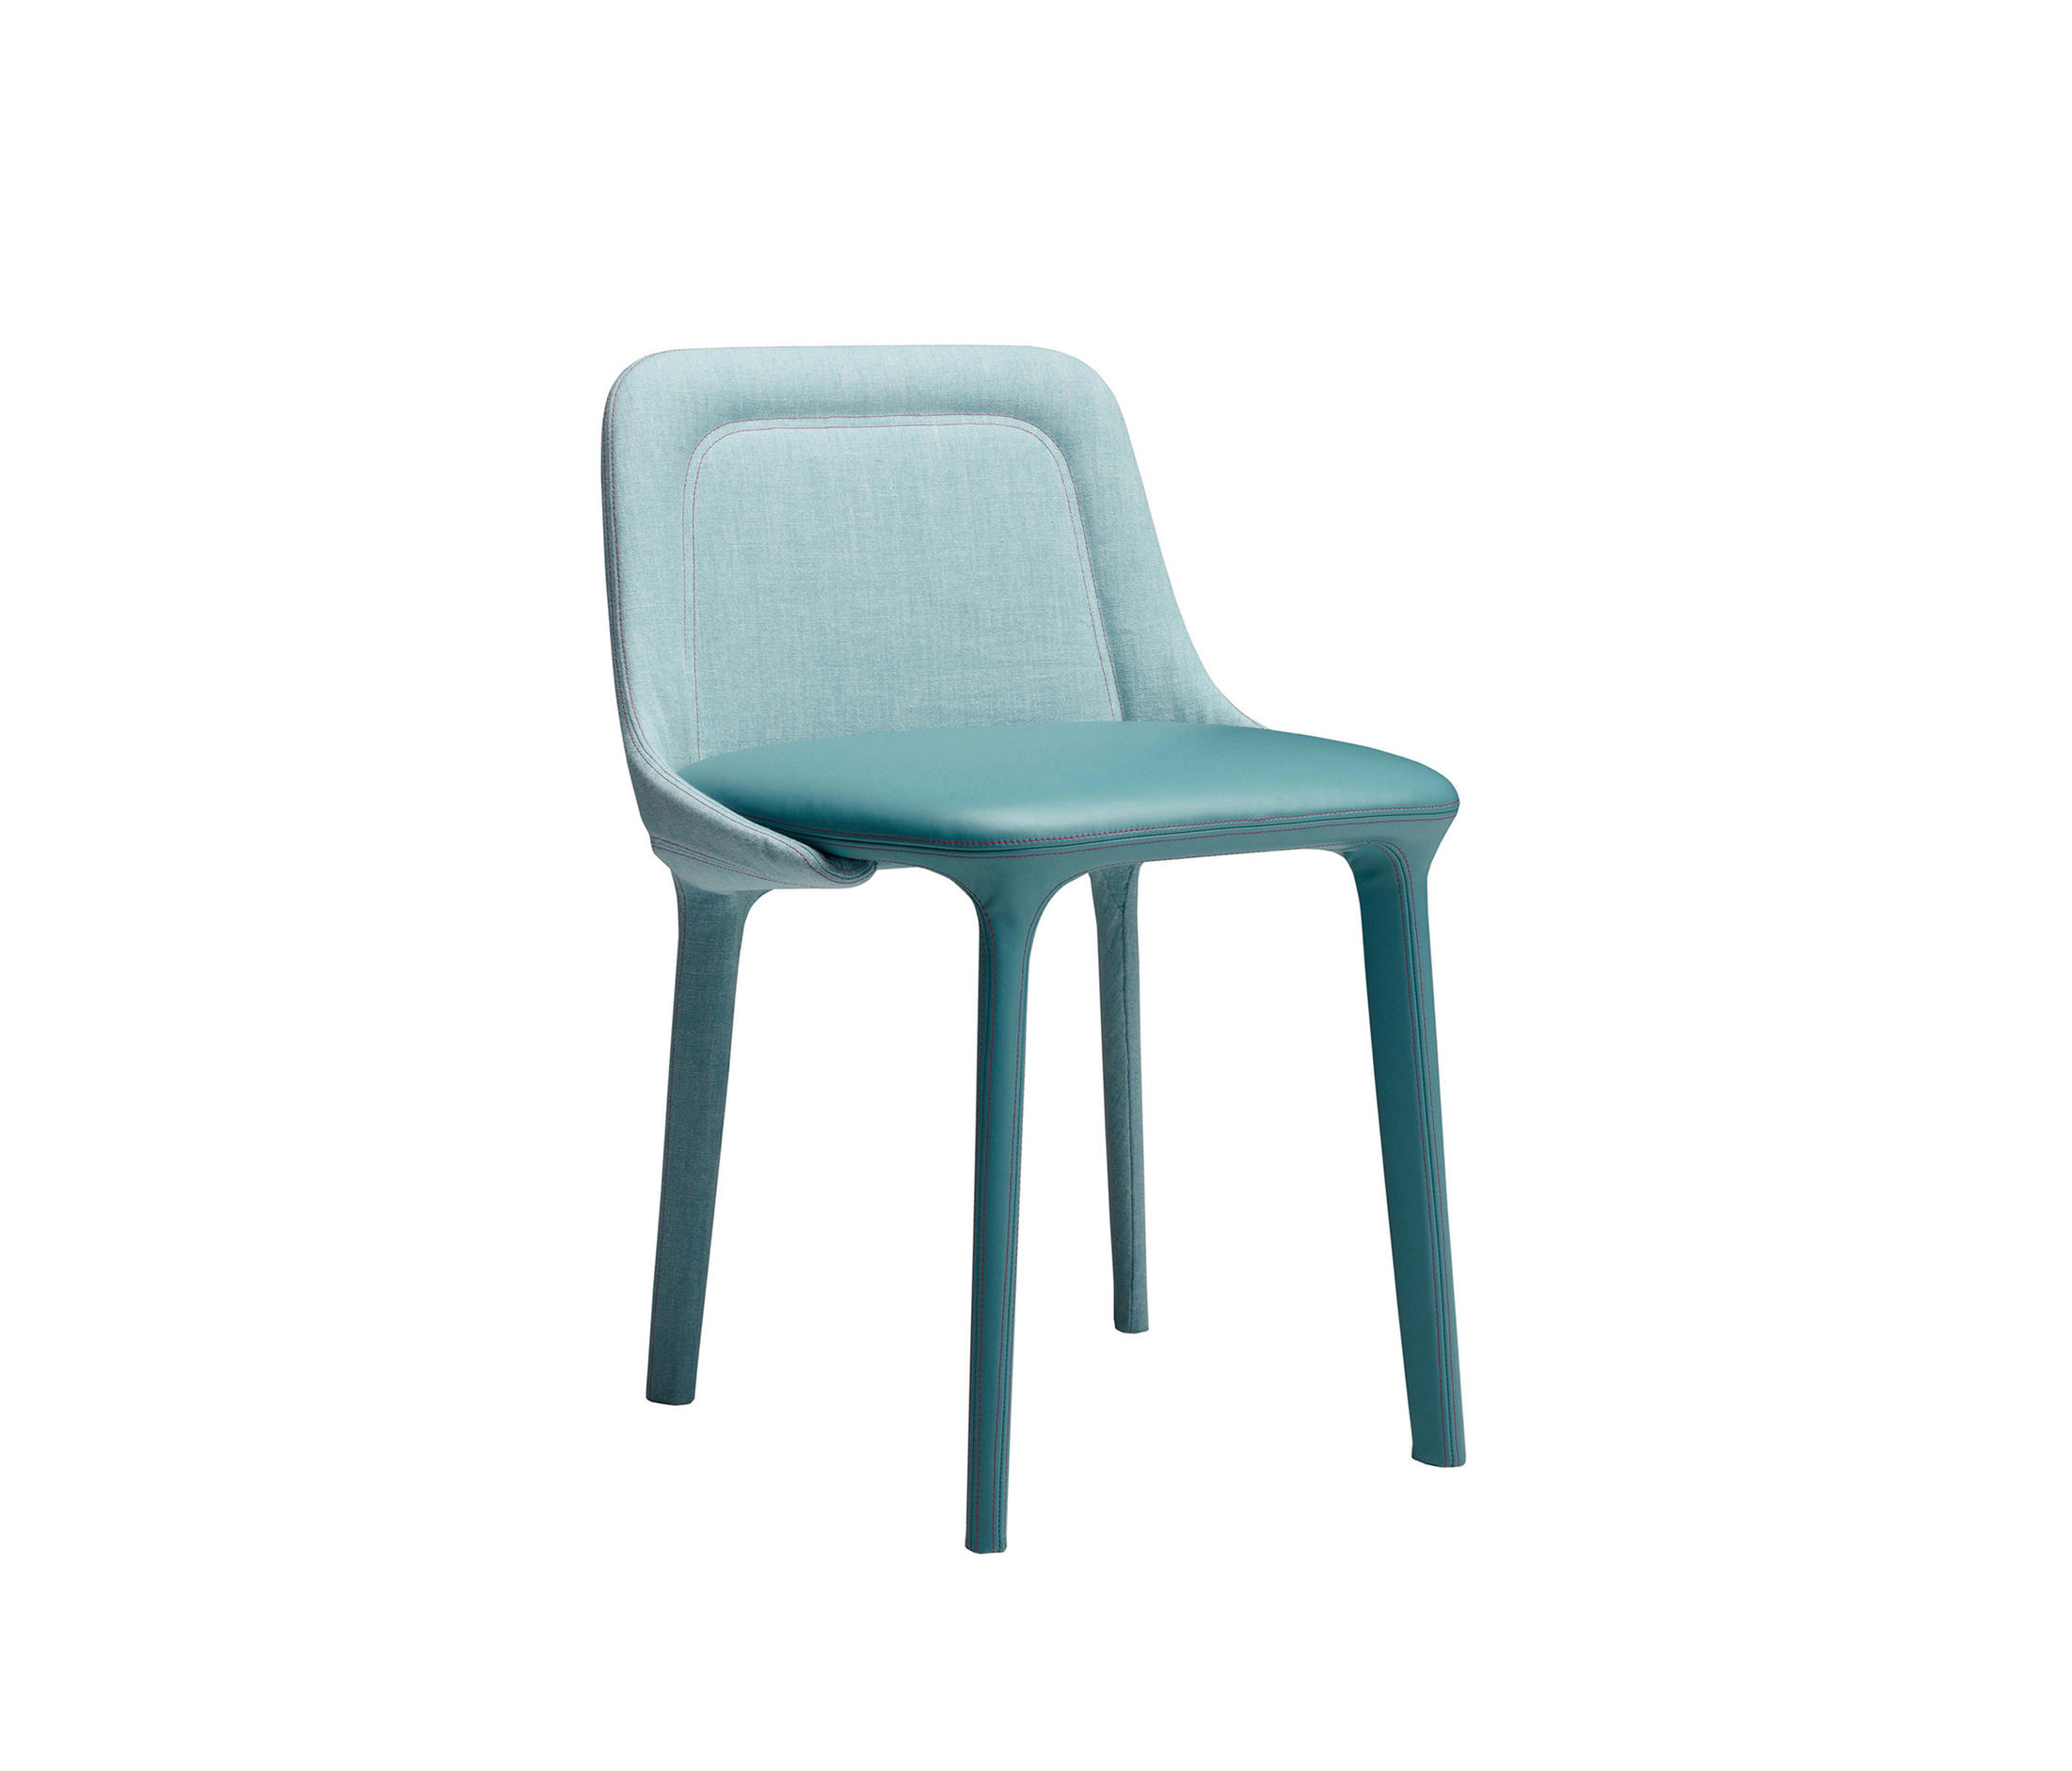 LEPEL CHAIR - Chairs from CASAMANIA-HORM.IT | Architonic